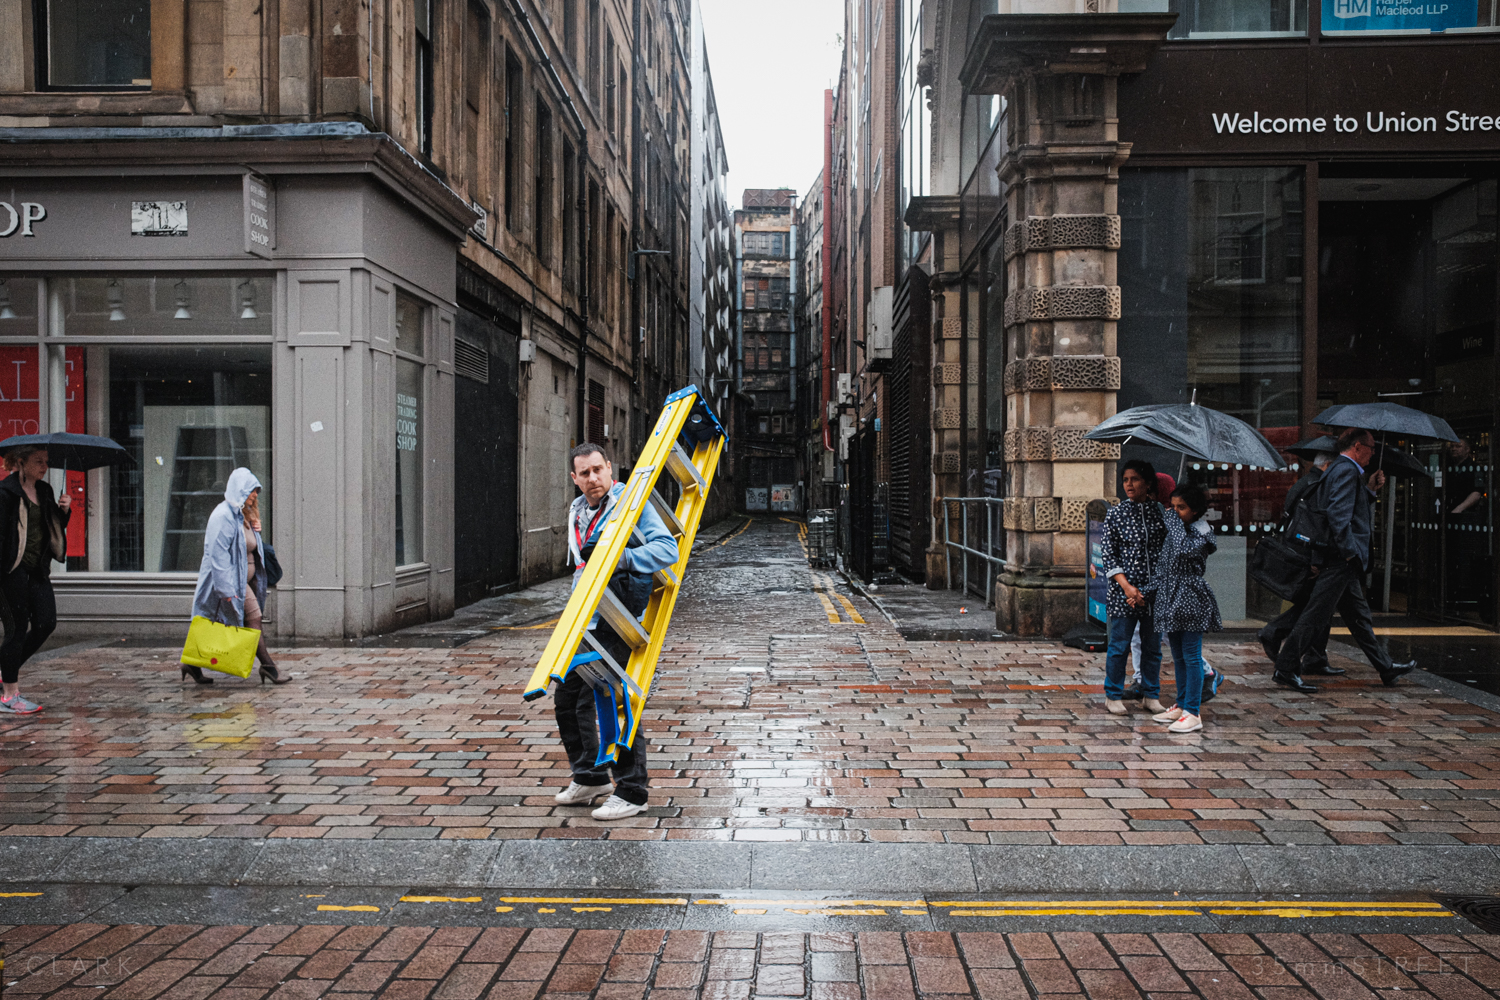 009_35mmStreet-Rainy-Friday-Glasgow.jpg